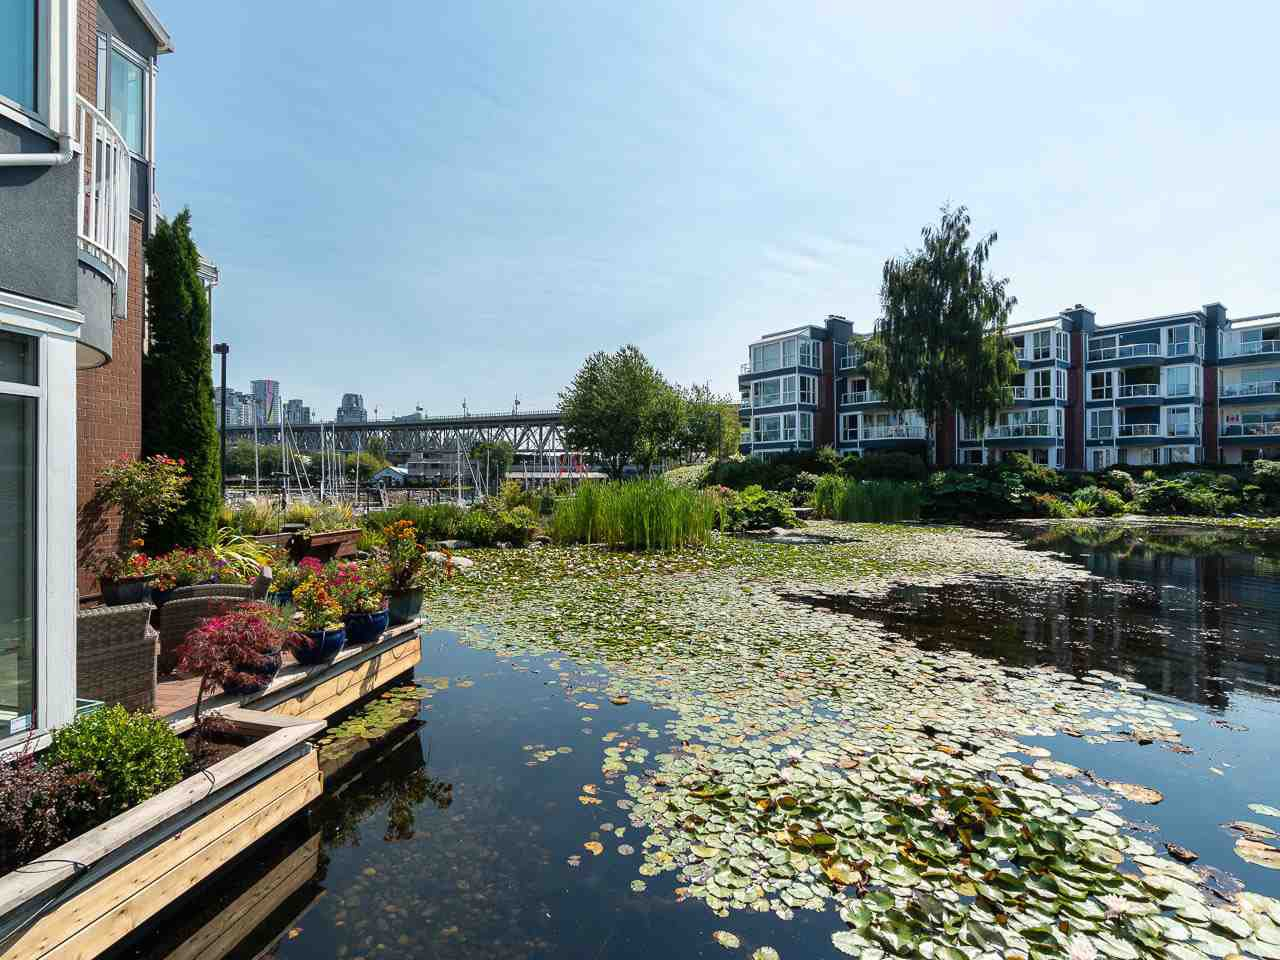 Main Photo: 1594 ISLAND PARK WALK in : False Creek Townhouse for sale : MLS®# R2297532